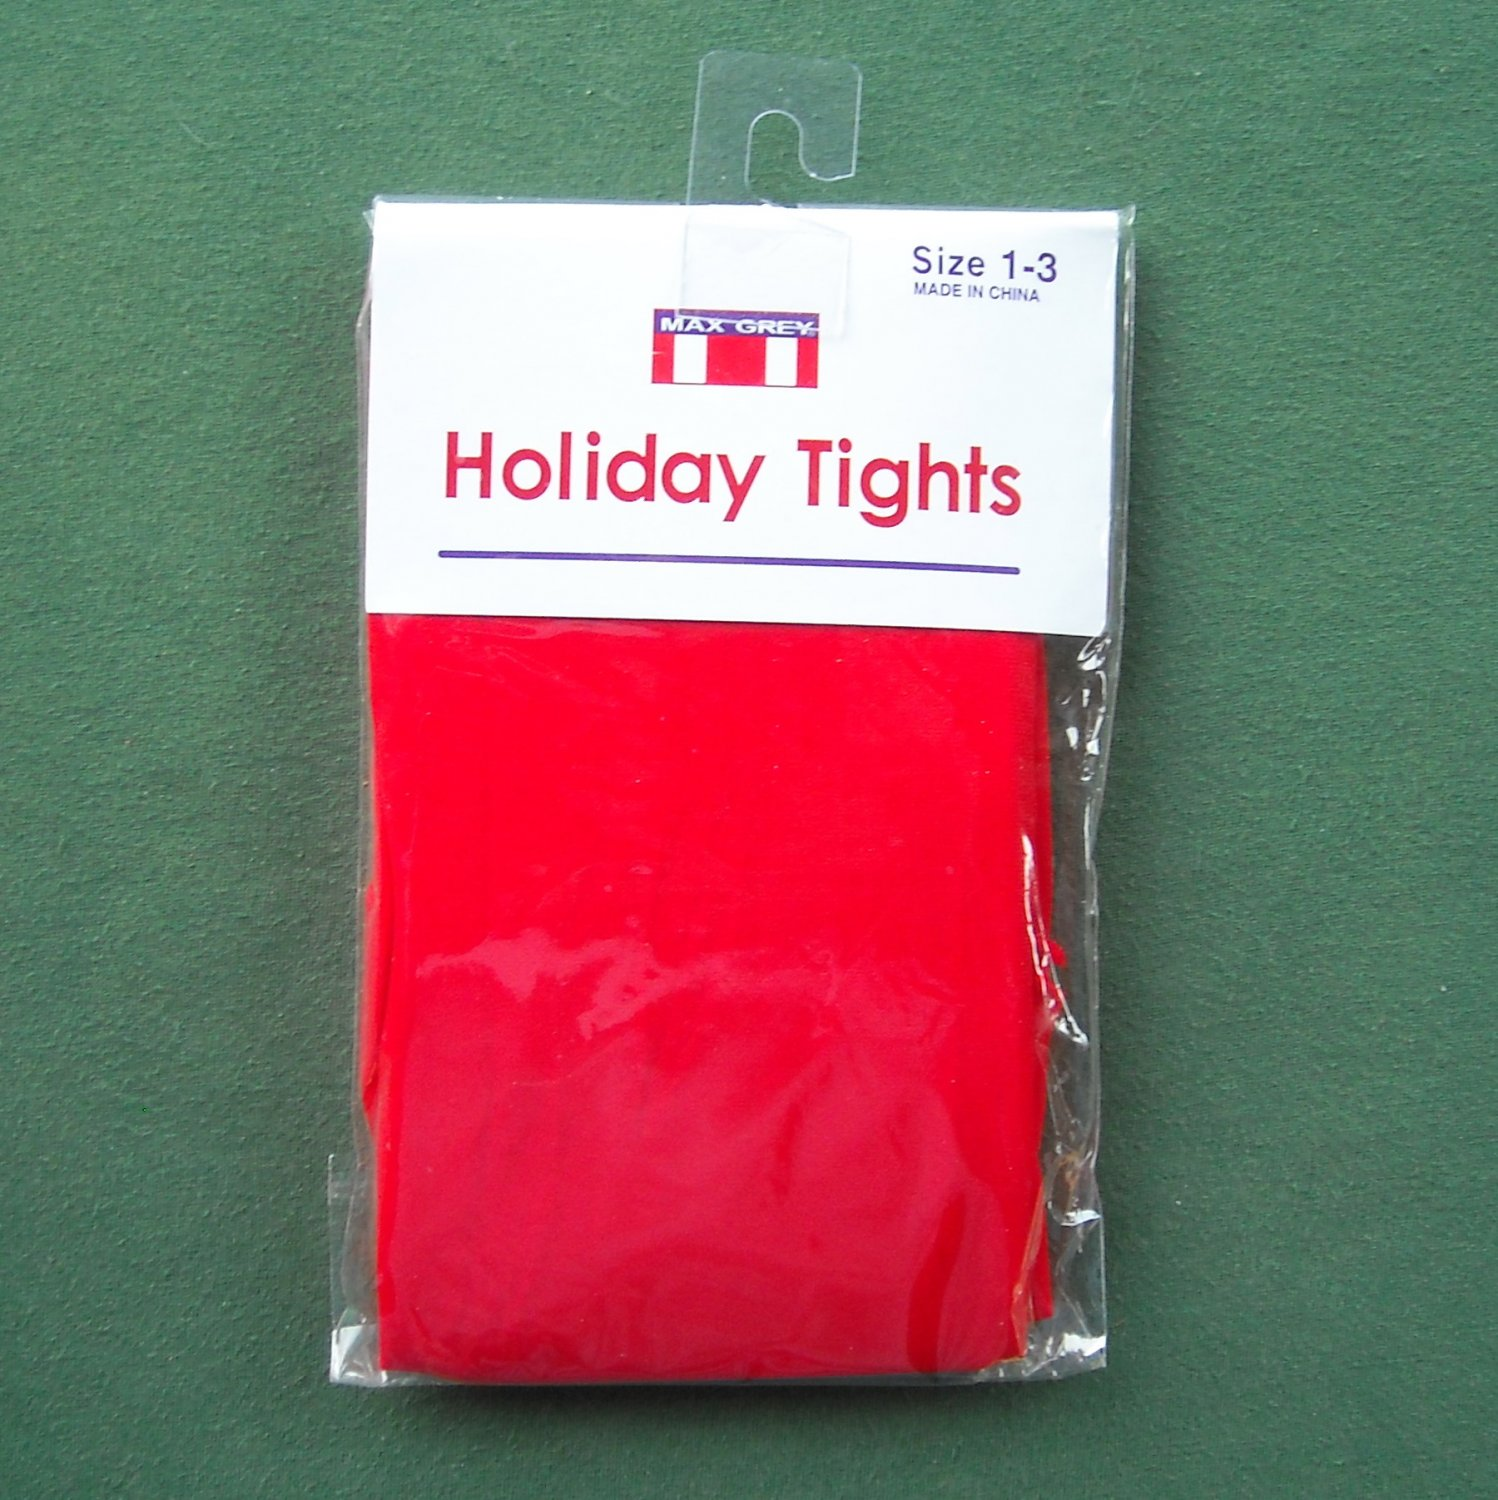 Max Grey Holiday red tights stocking girl size 1 - 3 NWT